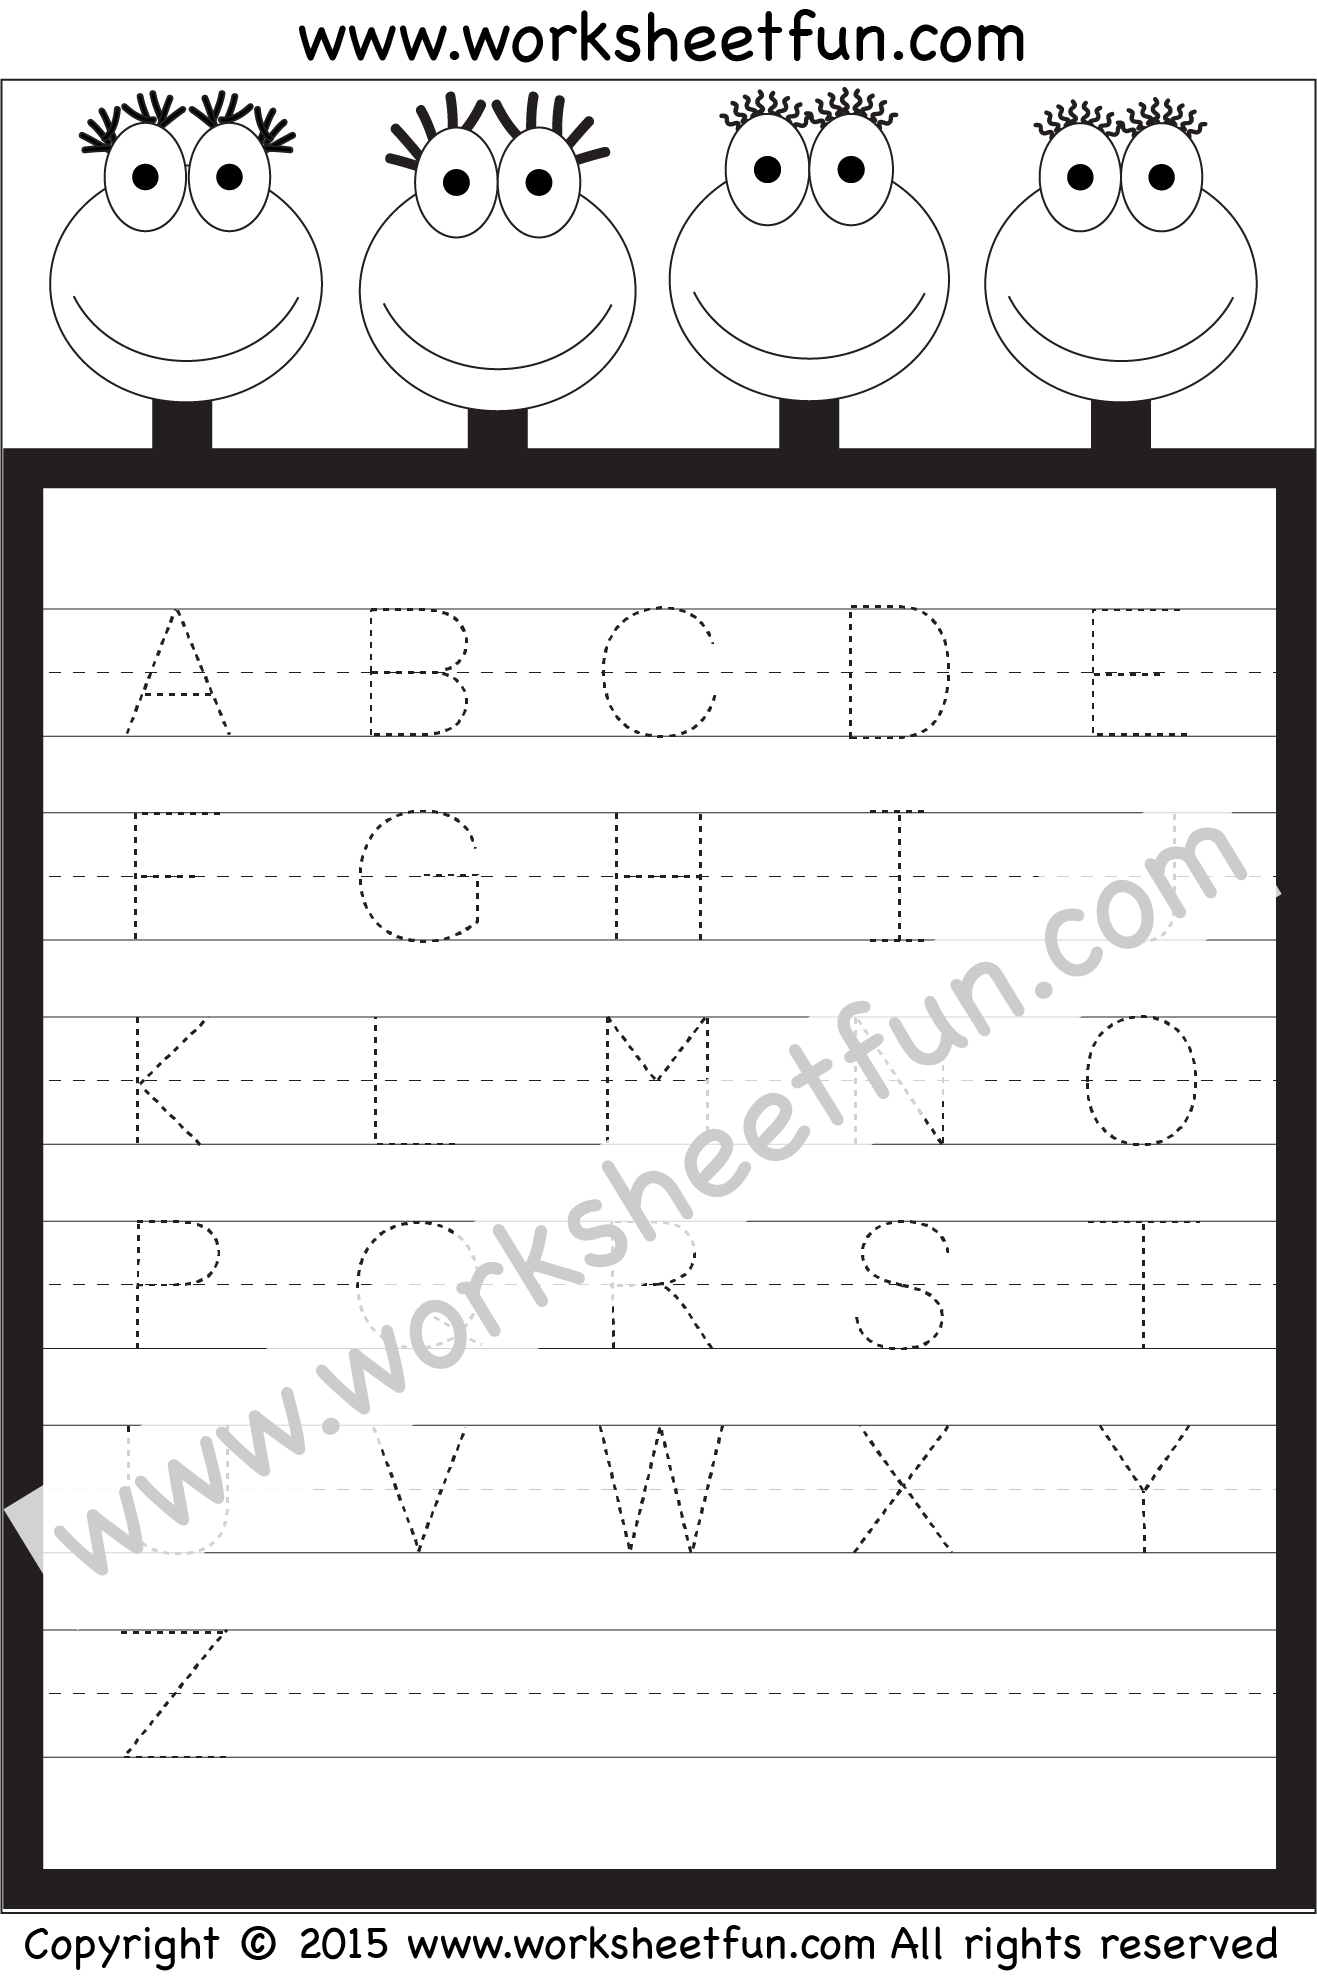 Letter Tracing Worksheet – Capital Letters / Free Printable with Alphabet Tracing Worksheets 1-20 Pdf